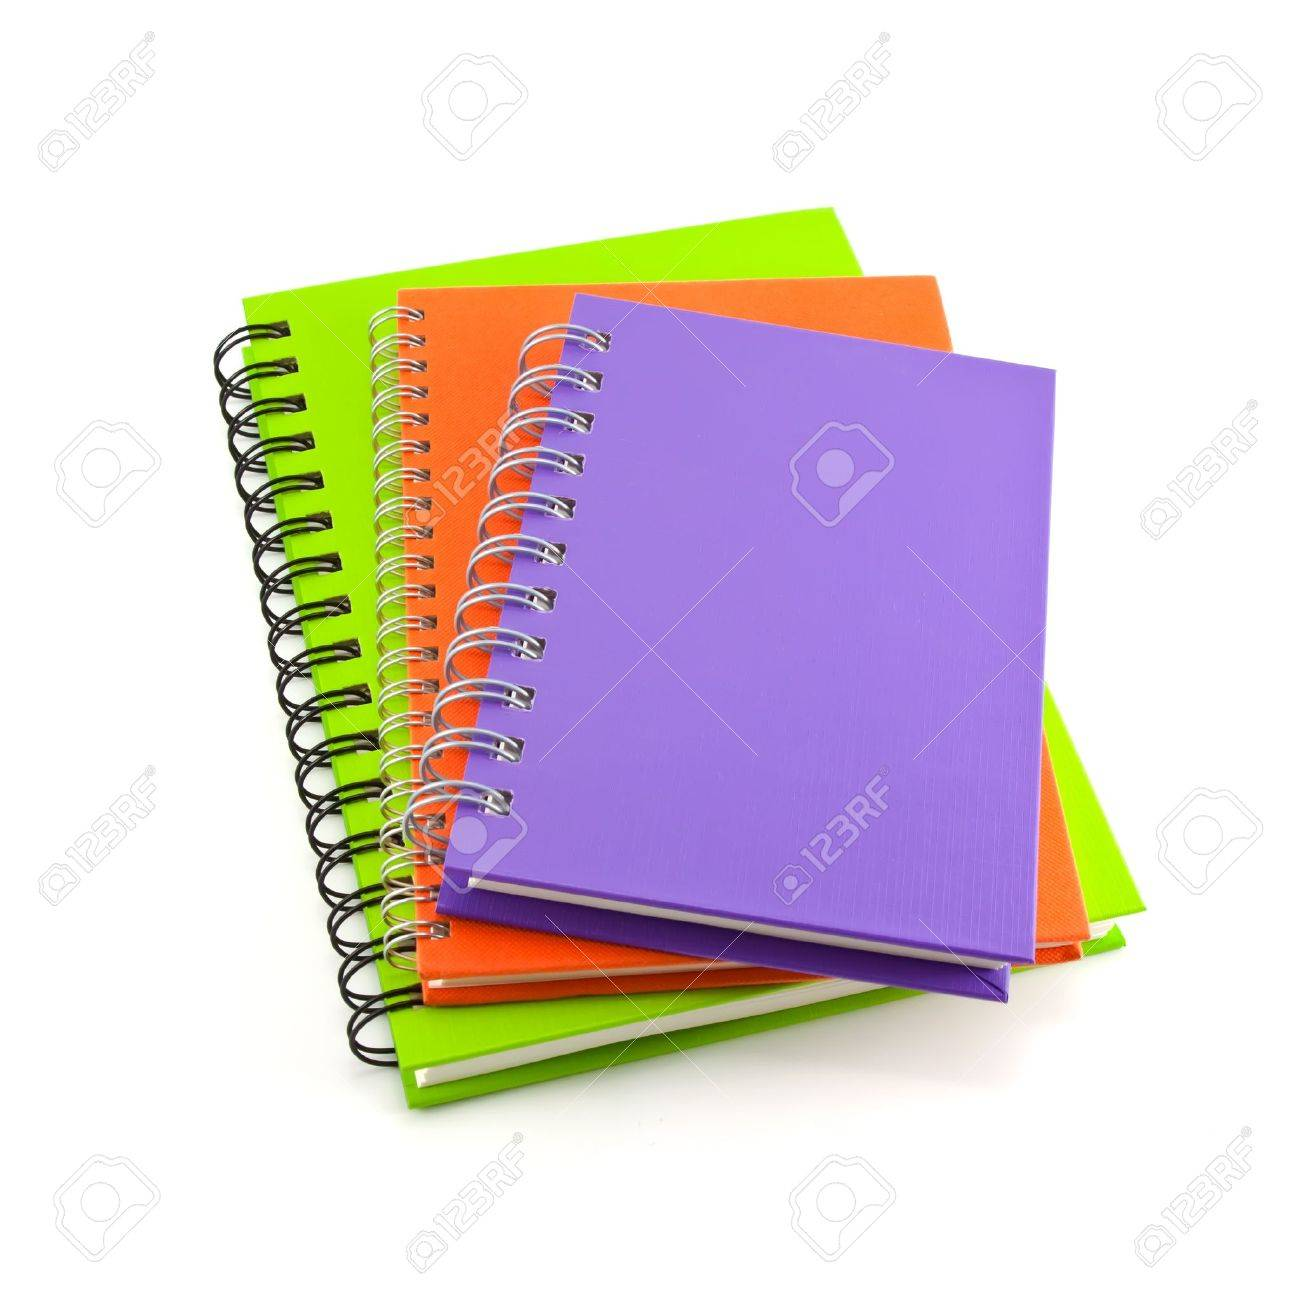 stack of notebook isolated on white background, office equipment Stock Photo - 10662473